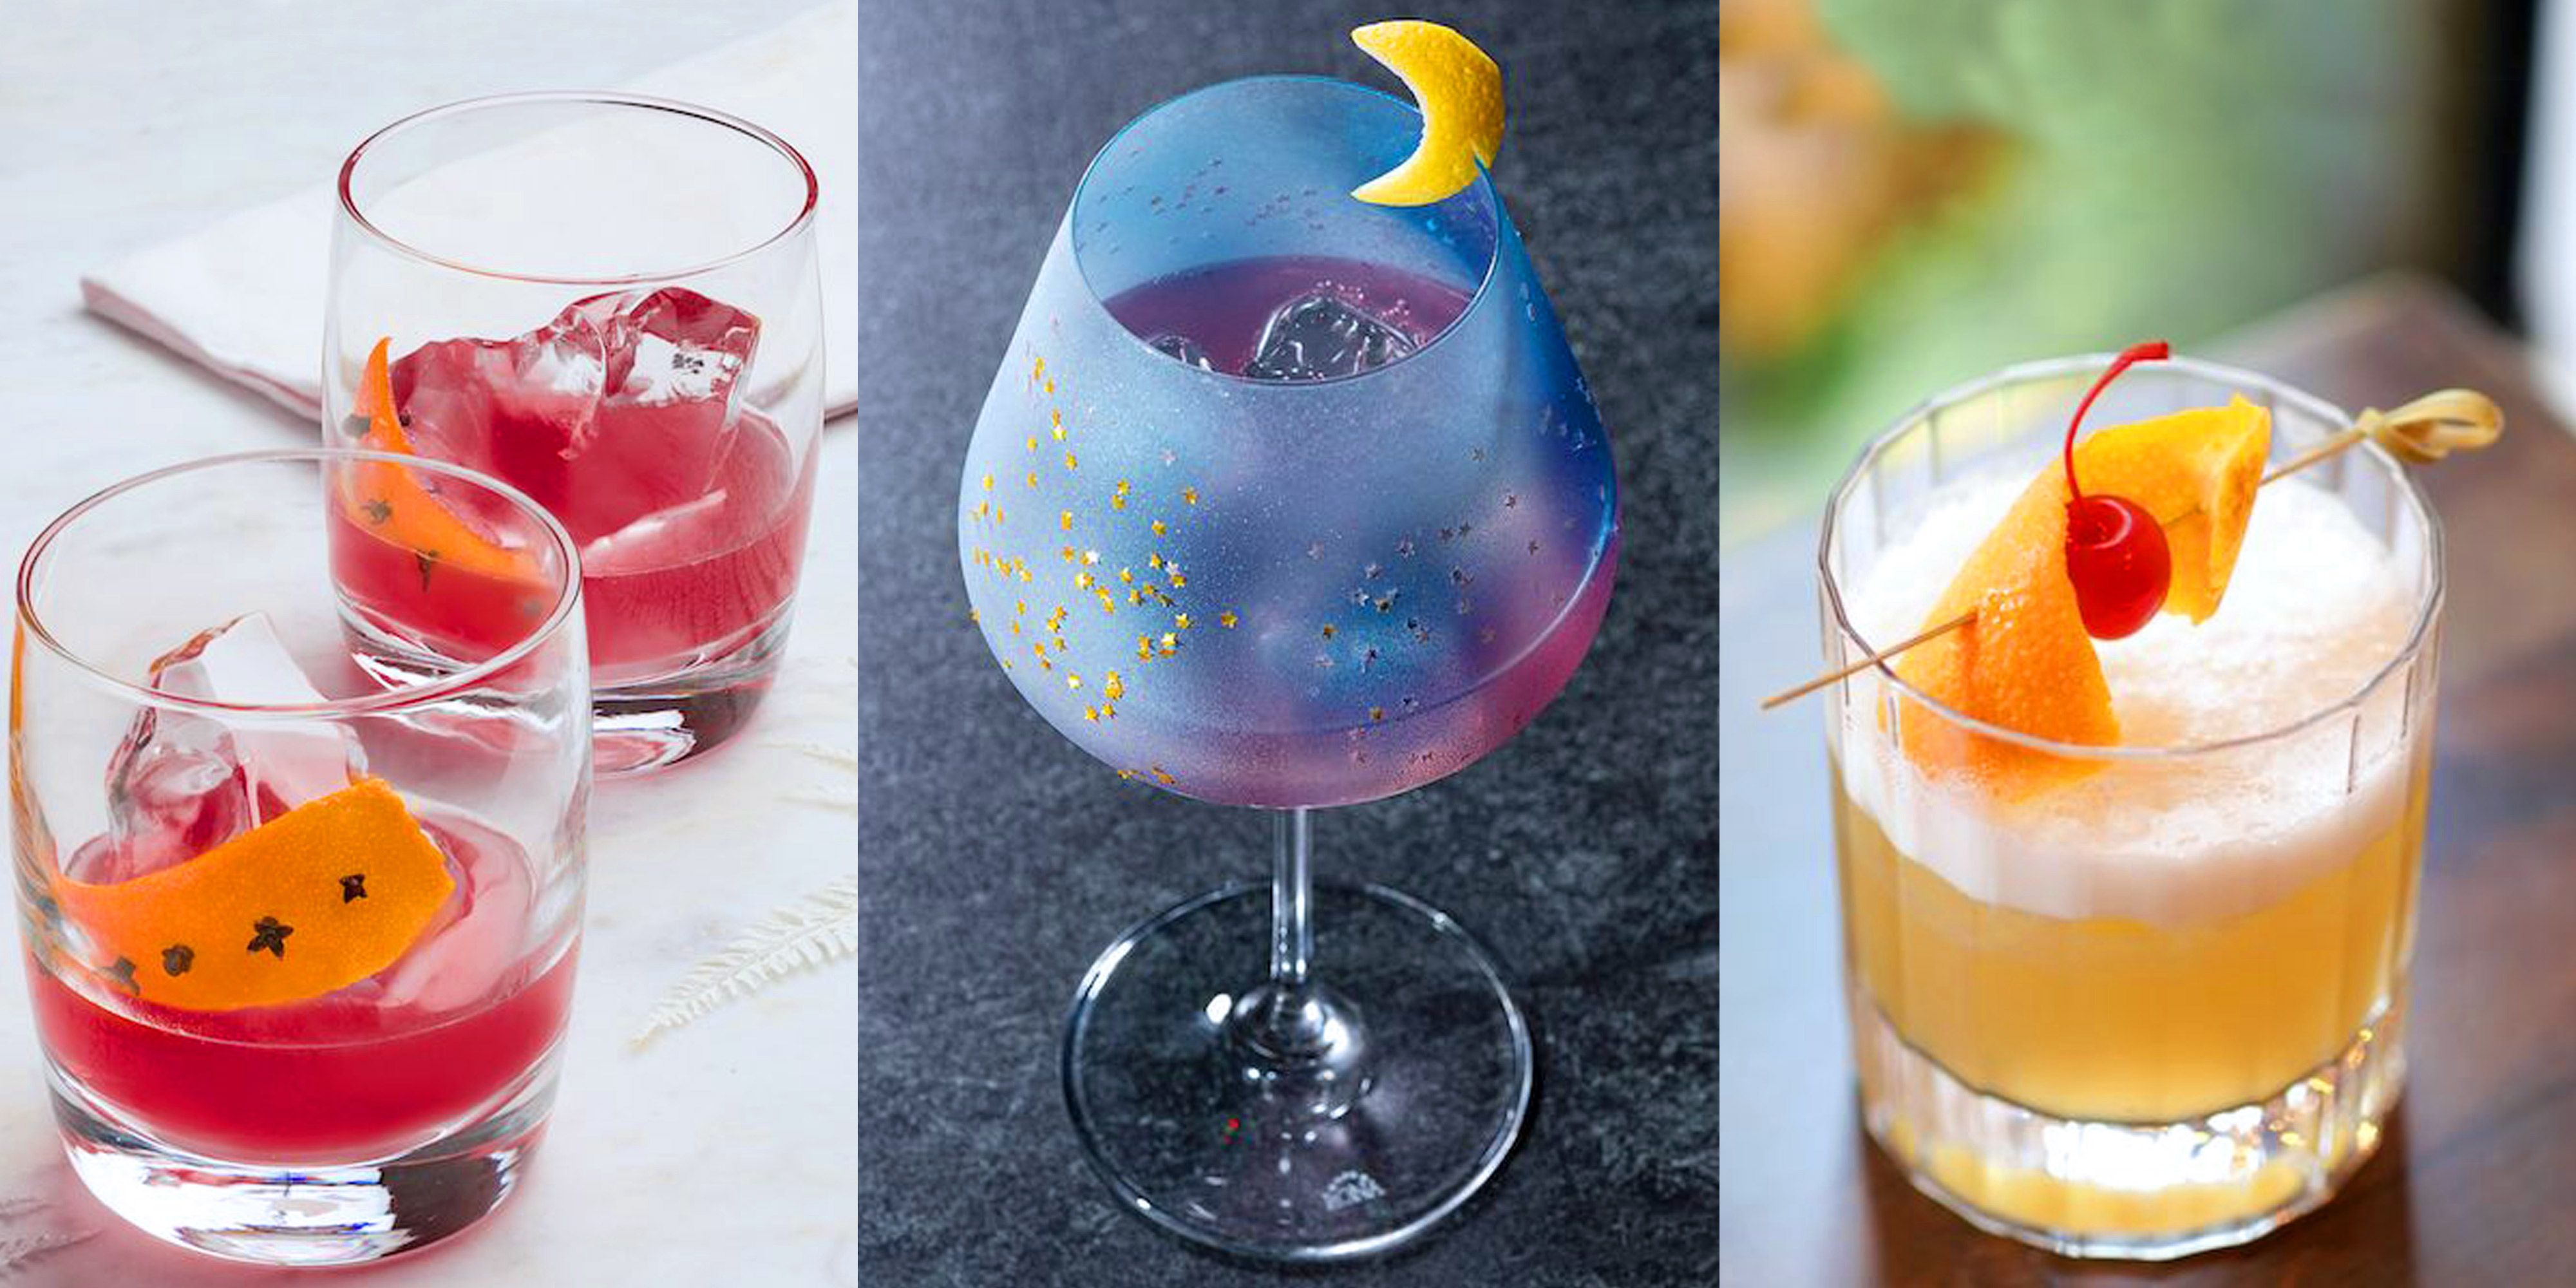 The Best New Year's Eve Cocktails to Ring In 2020 With